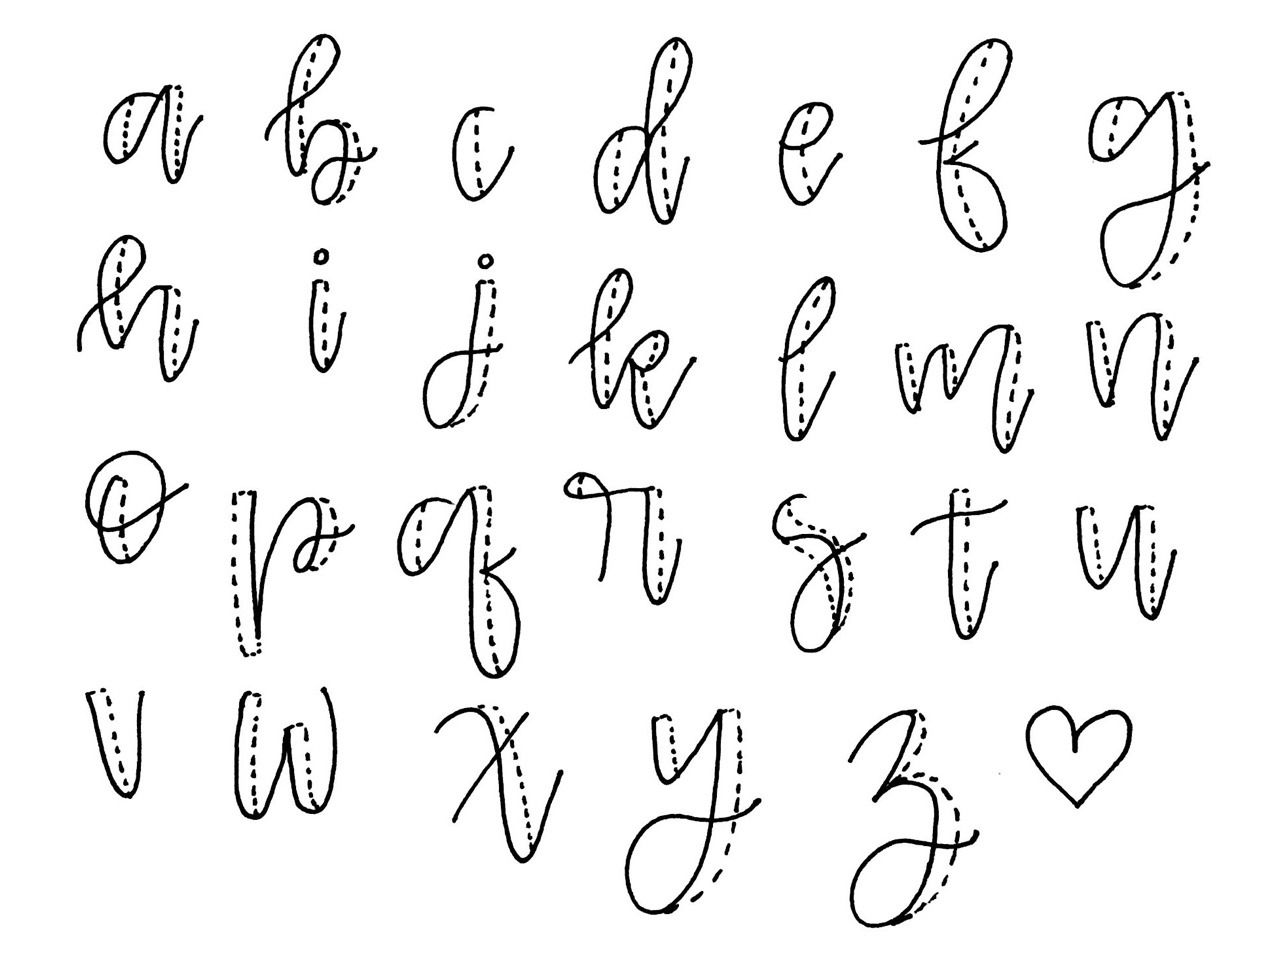 Studenting Steps 1 Exaggerated Cursive 2 Thicken The